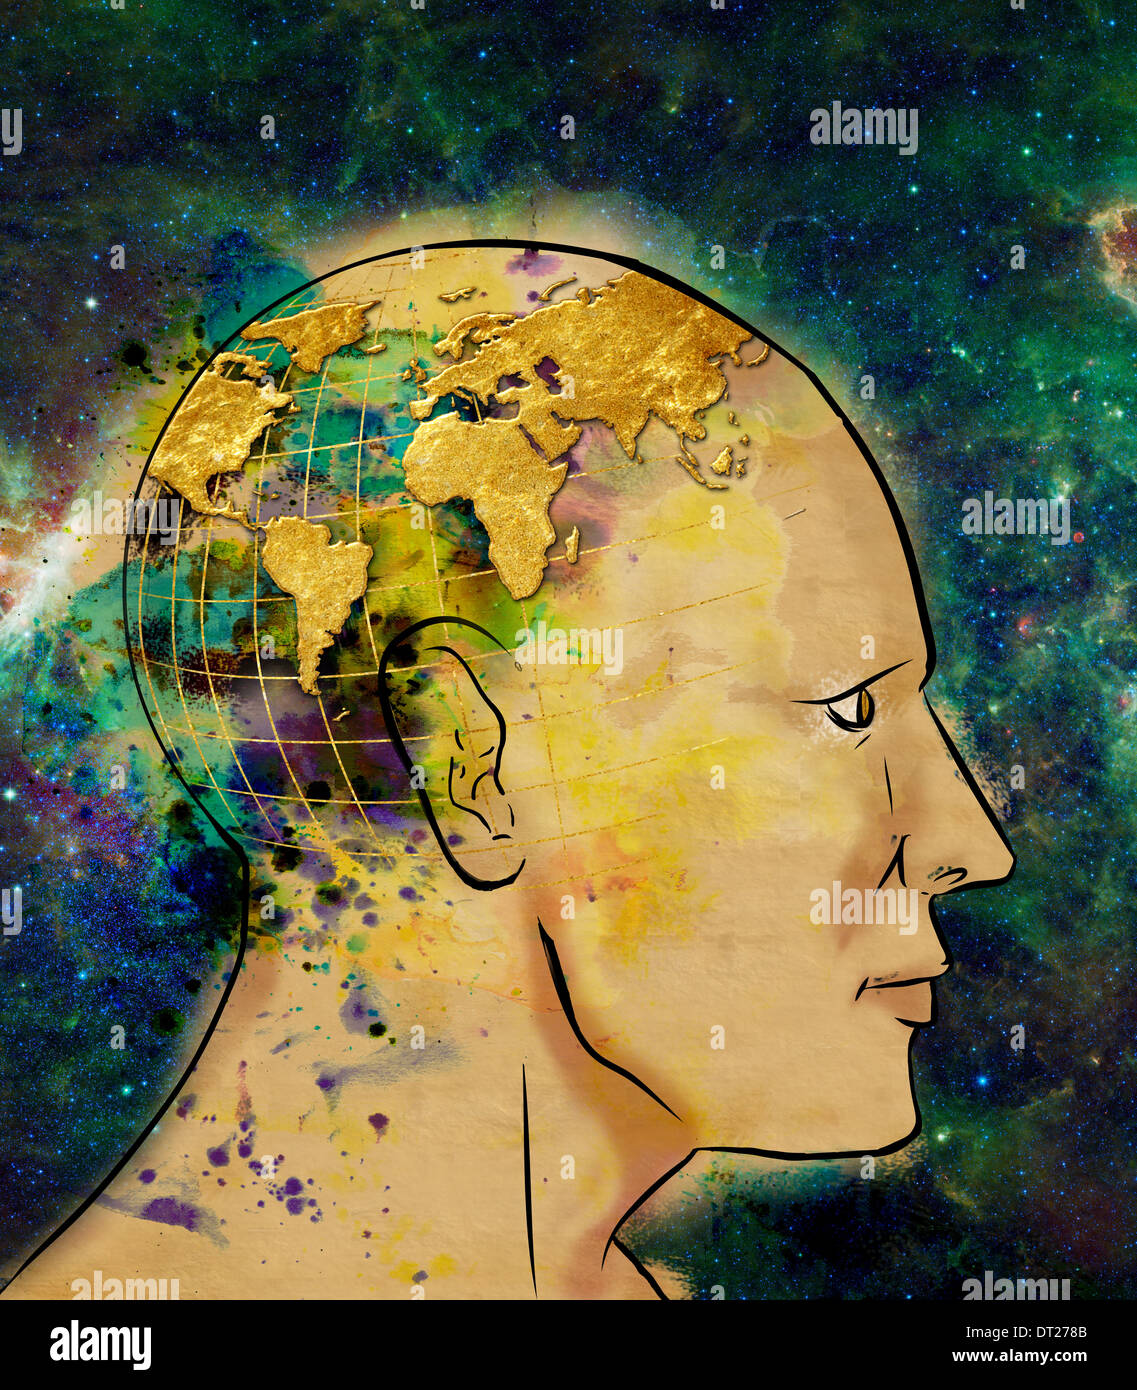 Illustrative image of man with world map on head representing globalization - Stock Image